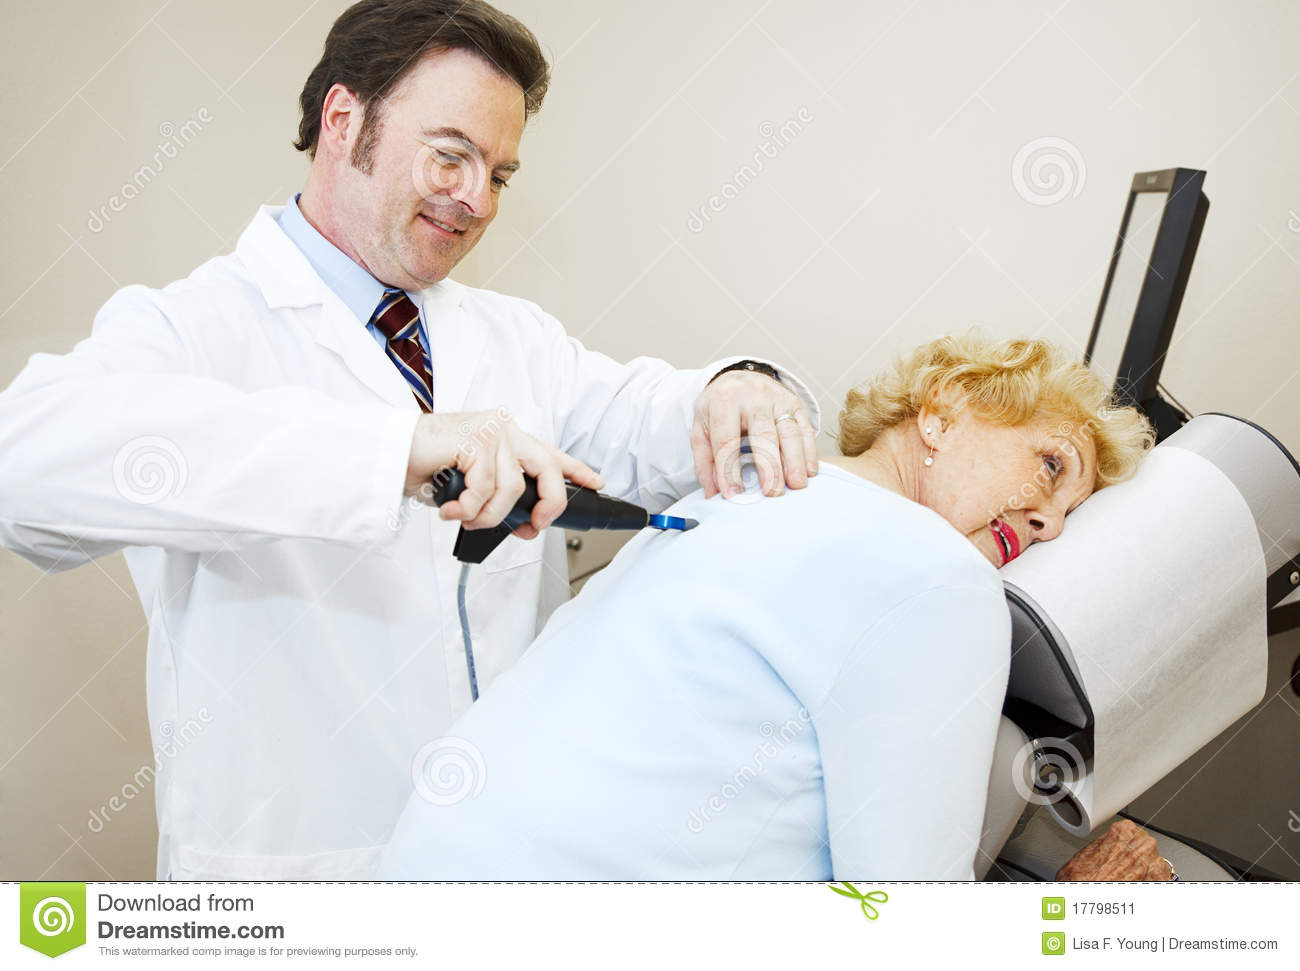 Friendly, smiling chiropractor adjusting a senior woman's back.